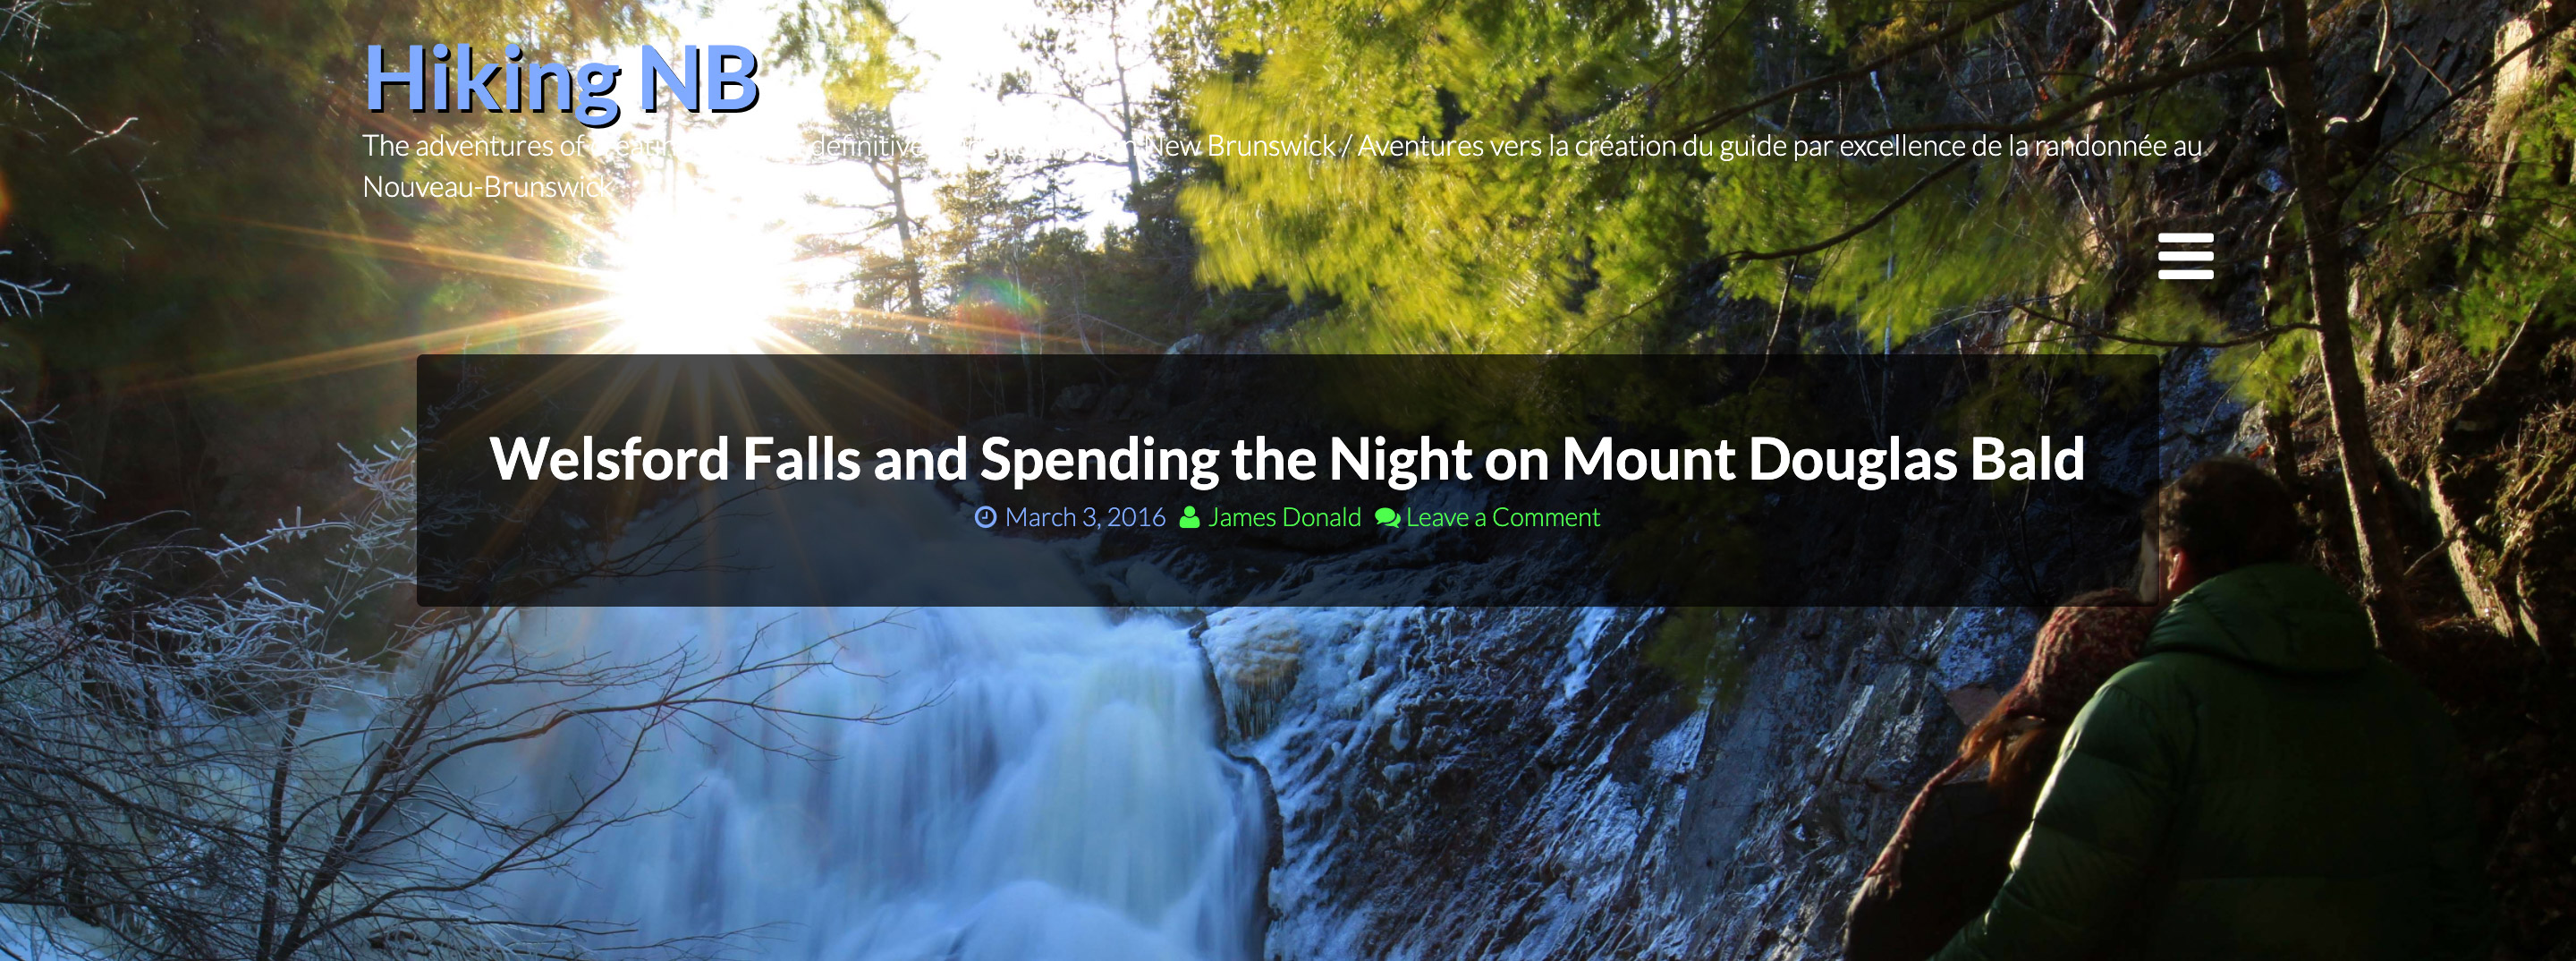 Welsford Falls and Spending the Night on Mount Douglas Bald Blog Post